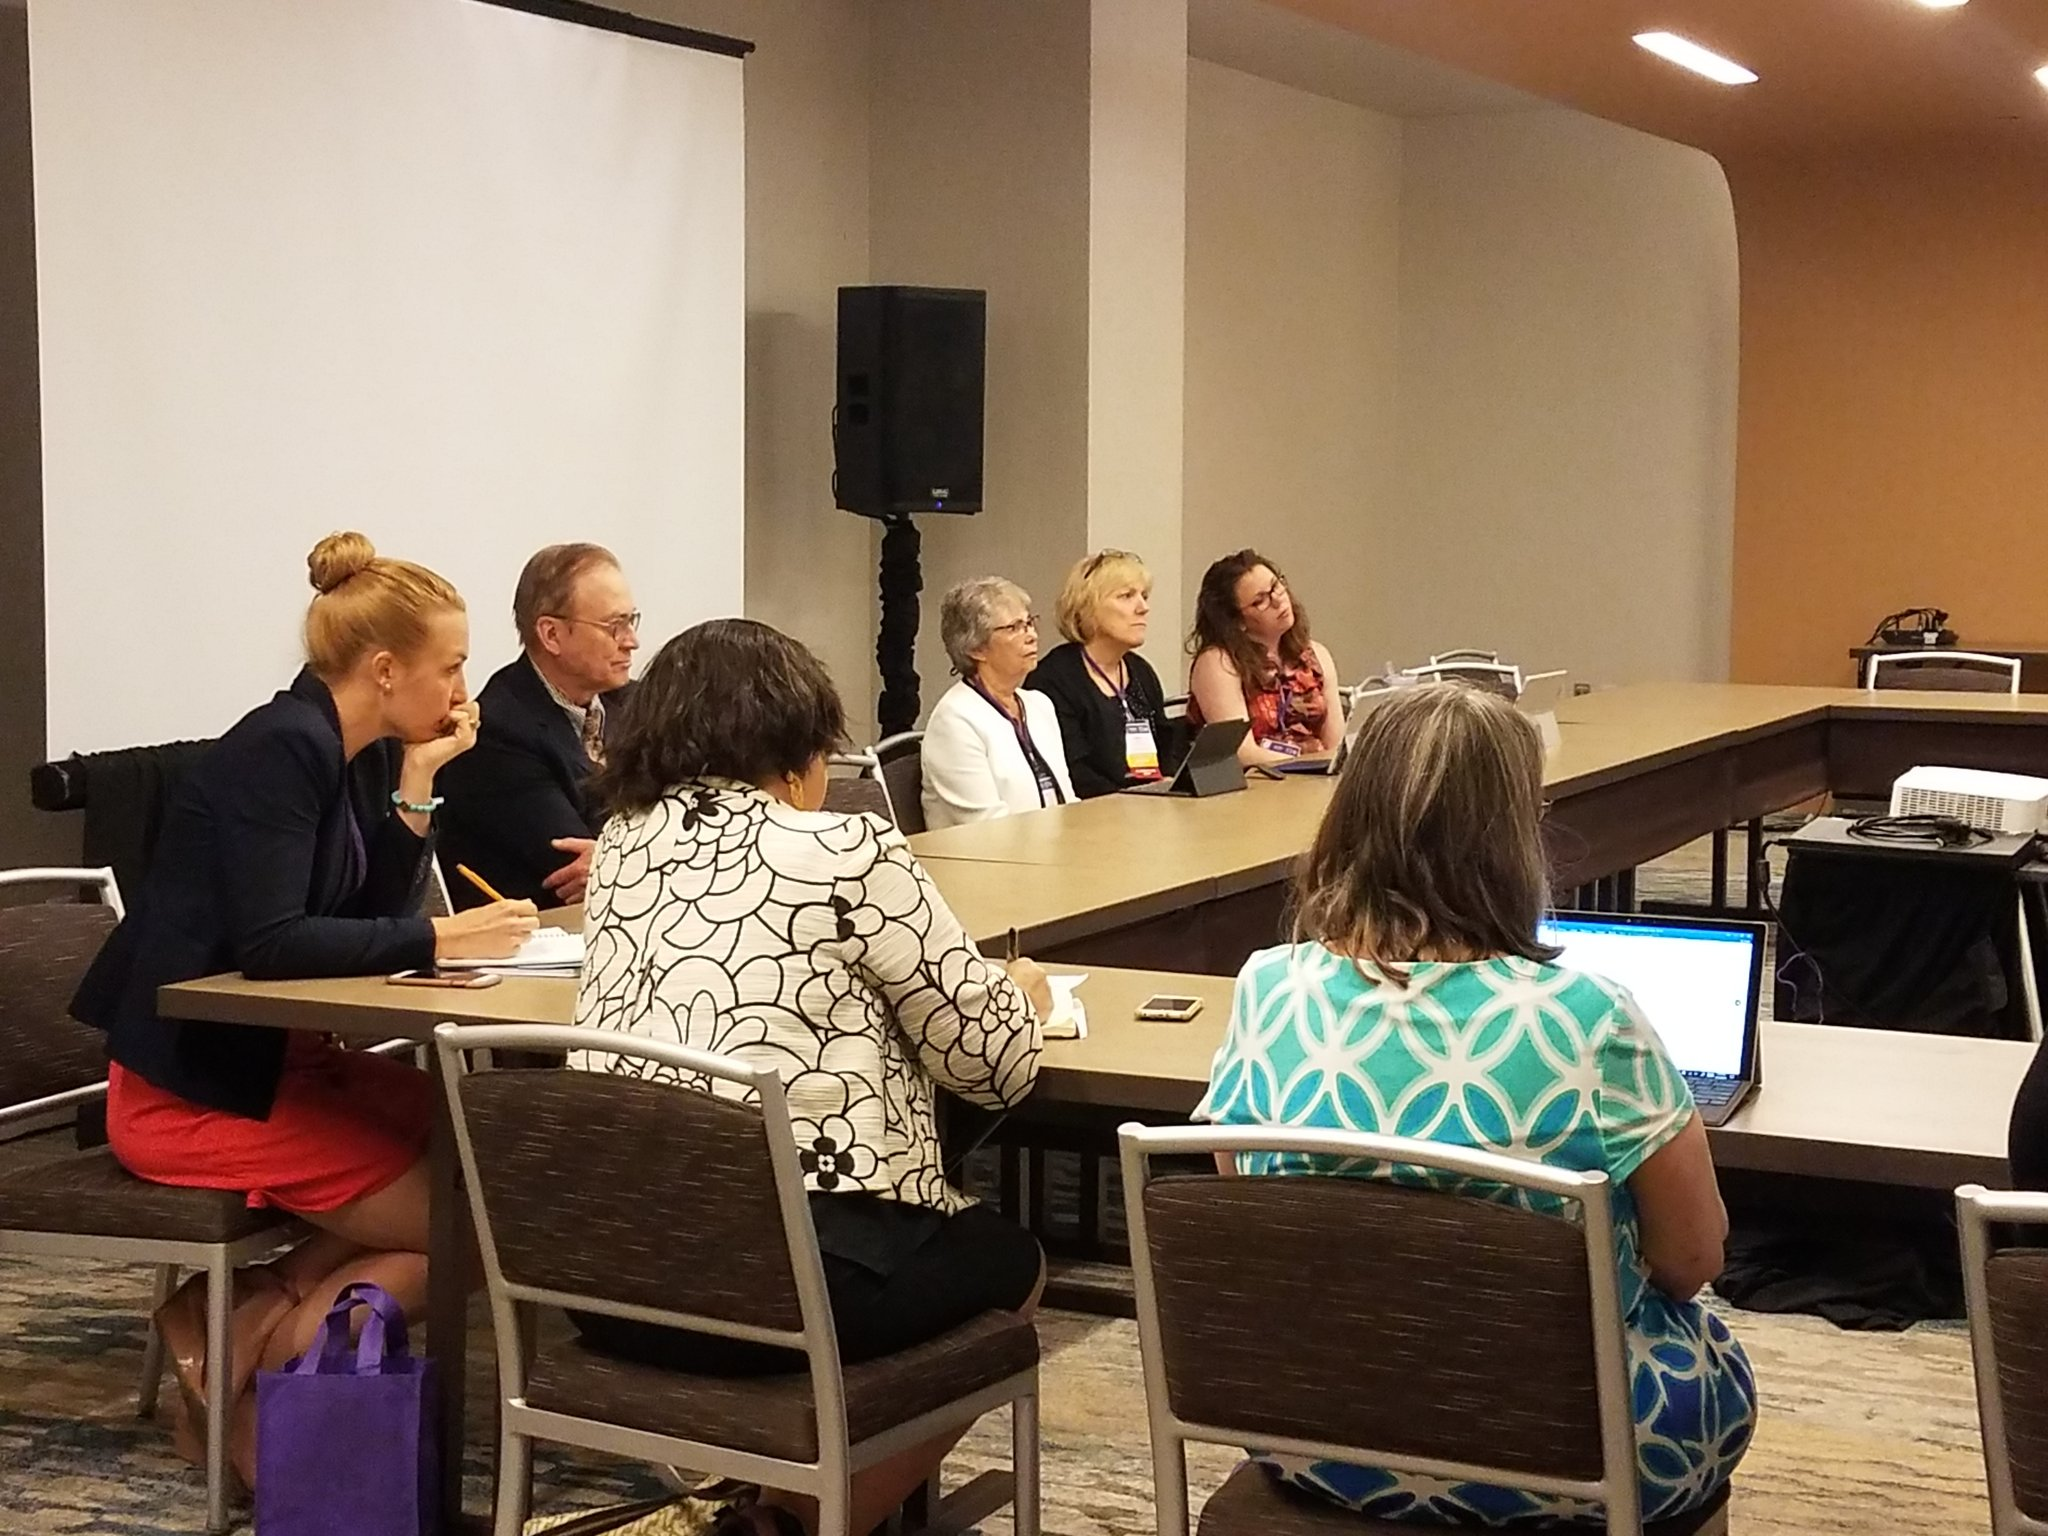 It all comes down to the communities! Monica Fischer & Susan Mineck discuss how local-levels can drive state-level action in Iowa. #GLRWeek https://t.co/MmUAloAB8K